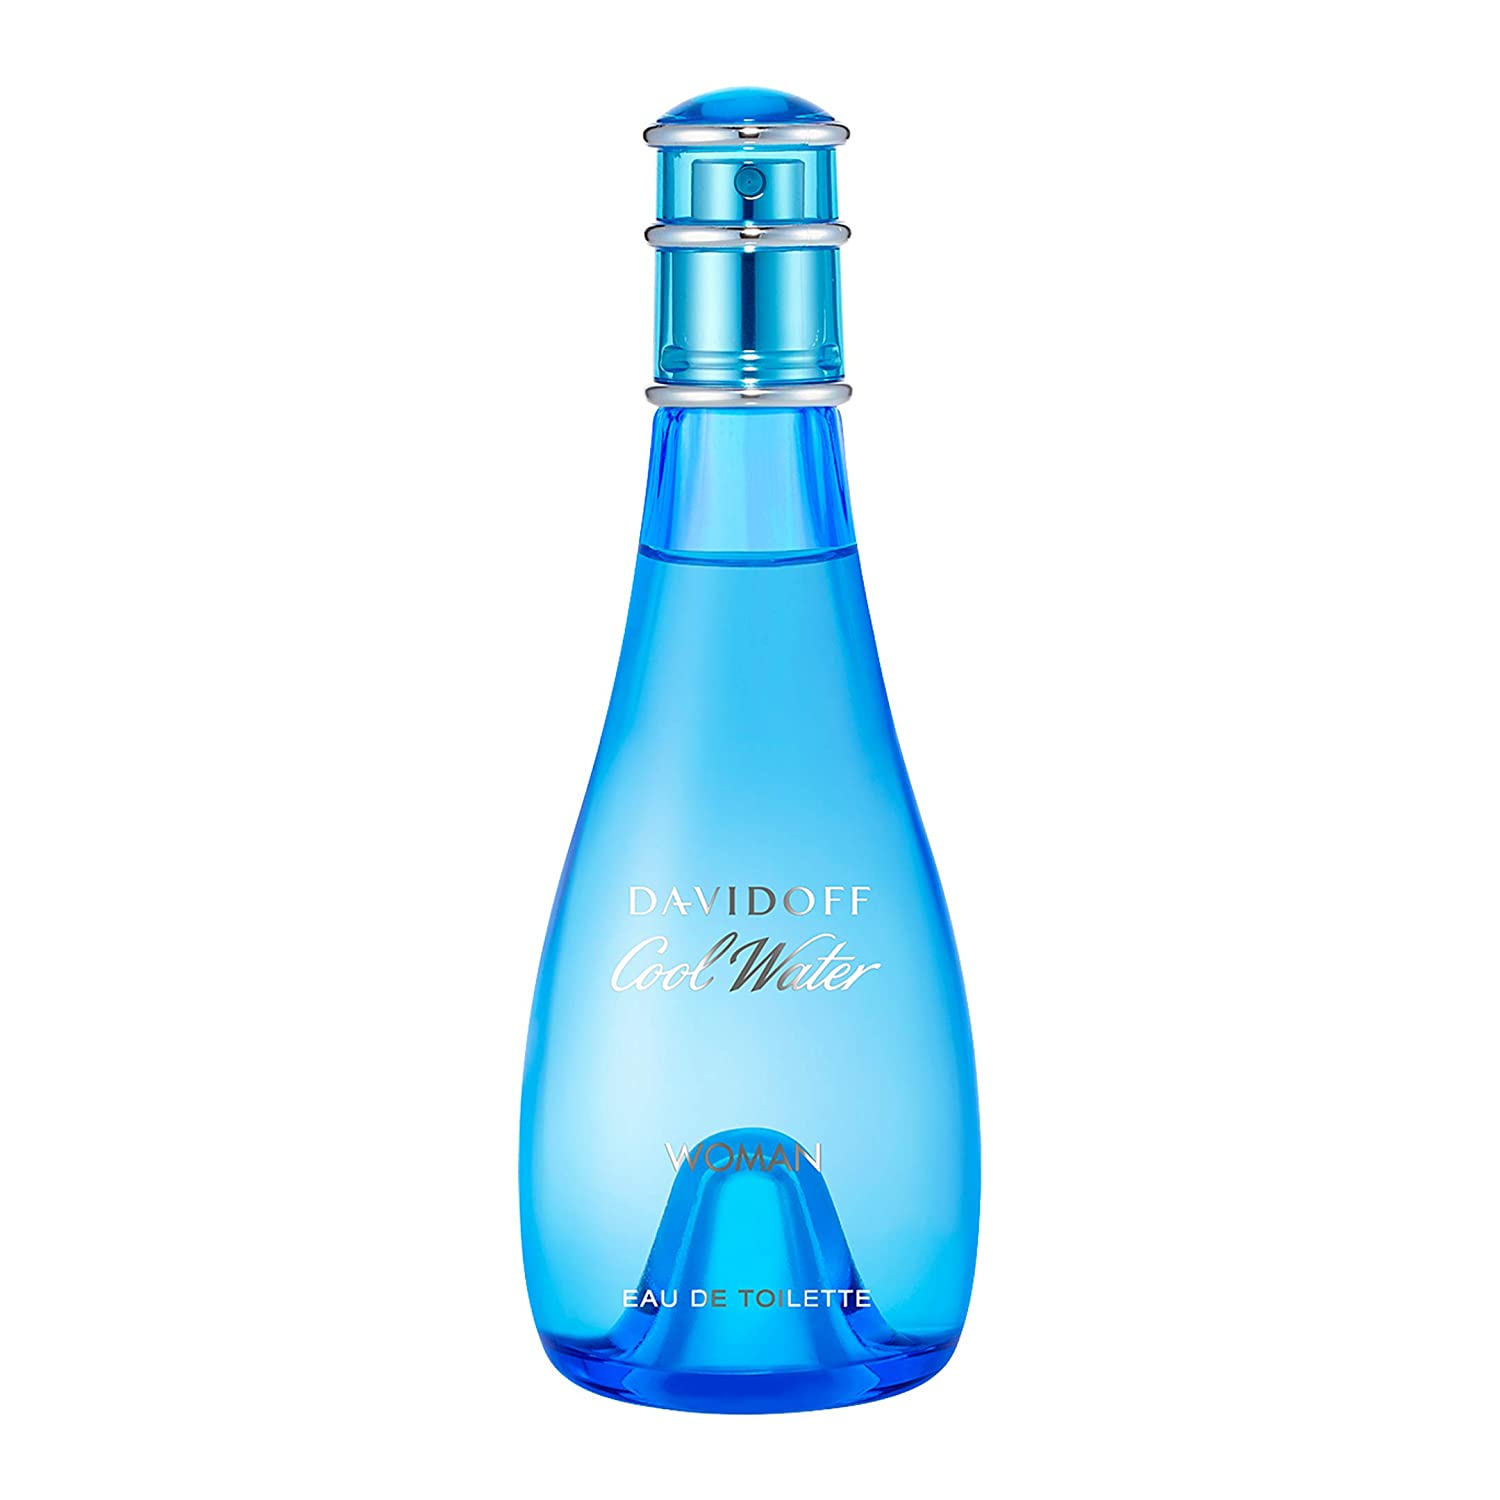 Davidoff - Cool Water Woman - Desodorante spray para mujer - 100 ml: Amazon.es: Belleza